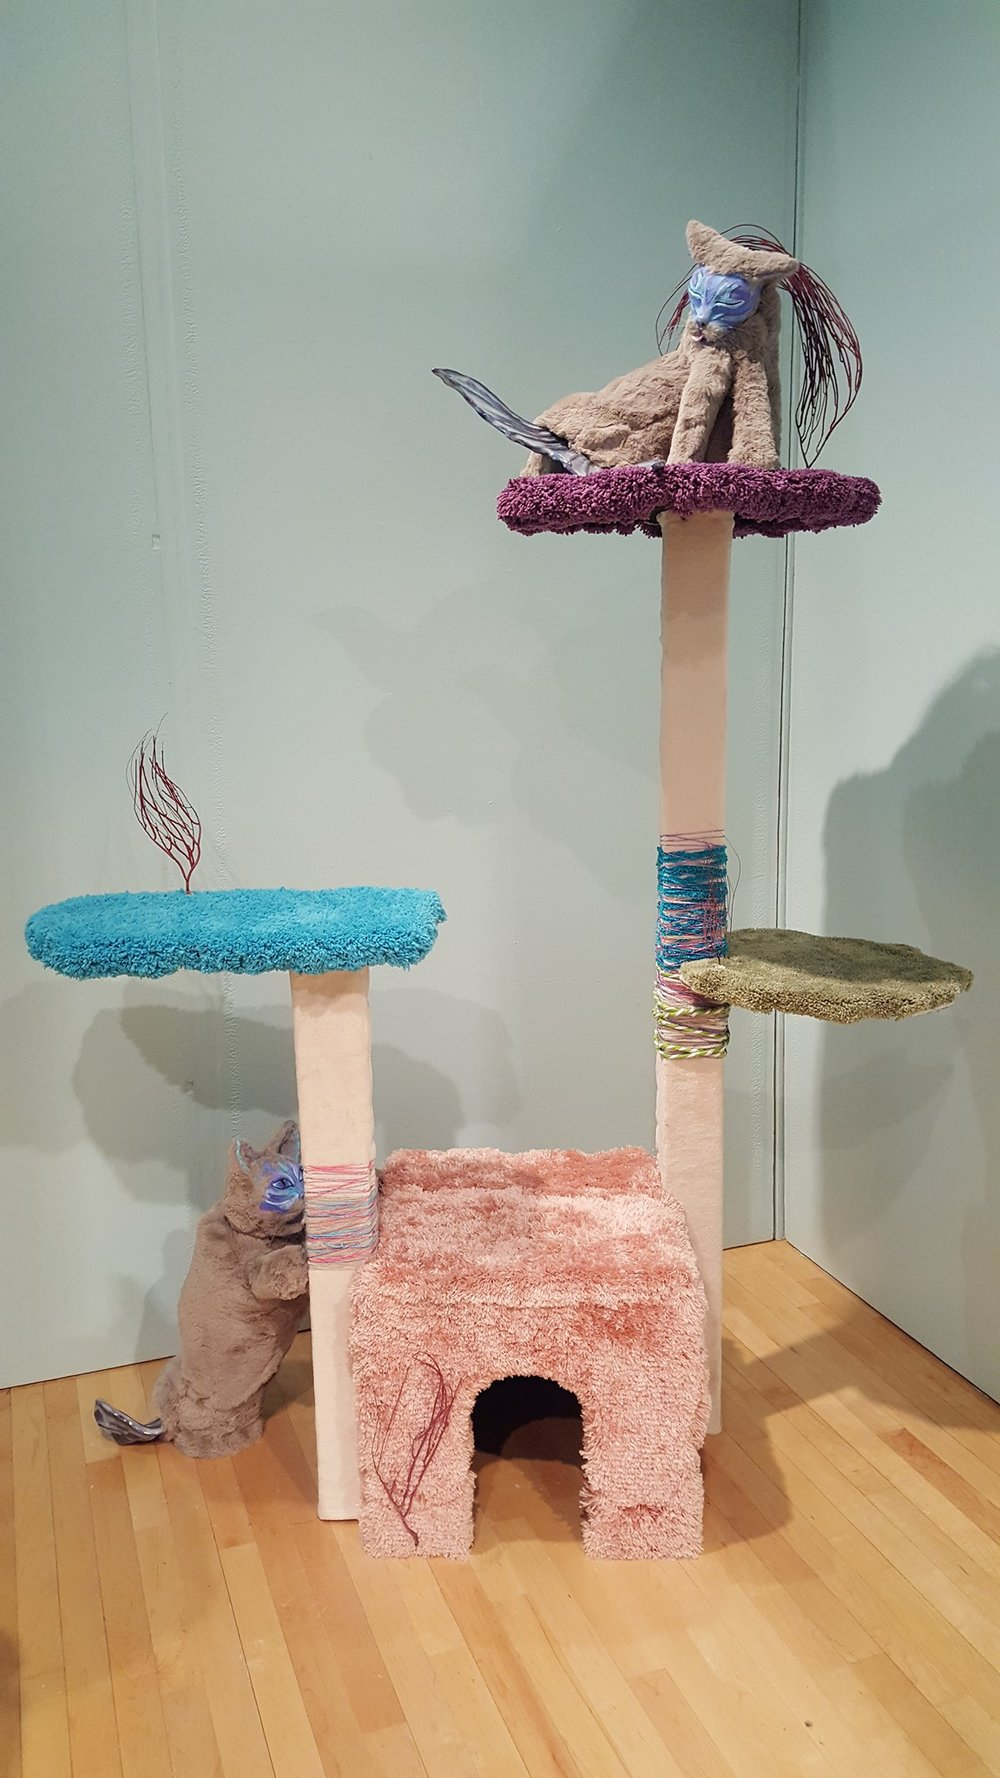 """Large Cat Tower"" by Allison Schwartz, Wood & foam, 32x24inx5ft, 2017, $500 (catfish not included - tower not built for real cats but could be adapted)"